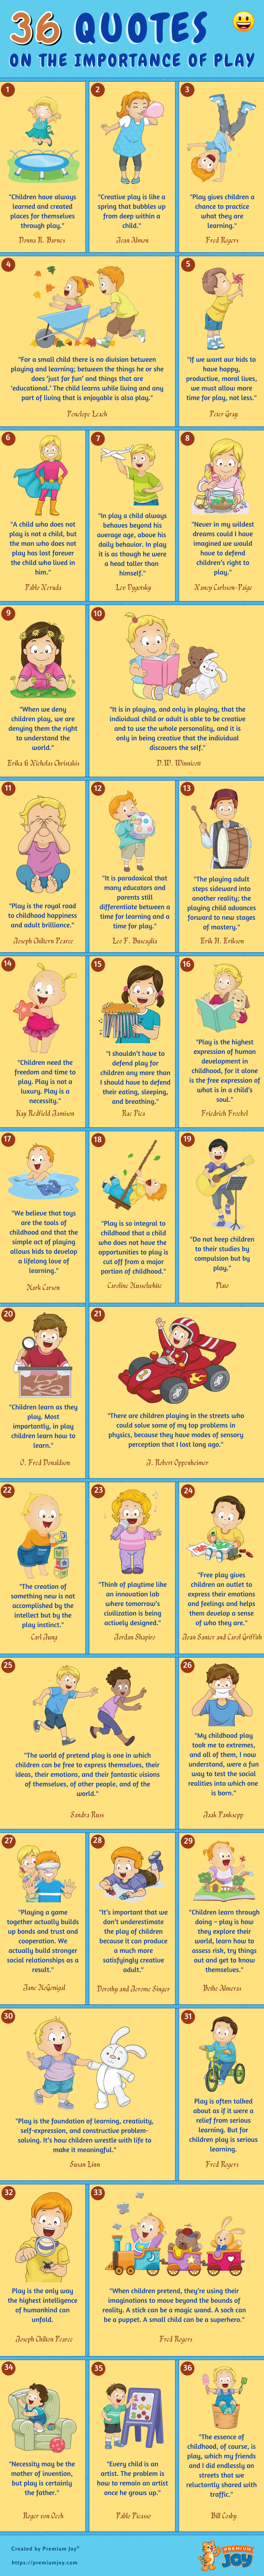 36 Quotes on the Importance of Play for Kids